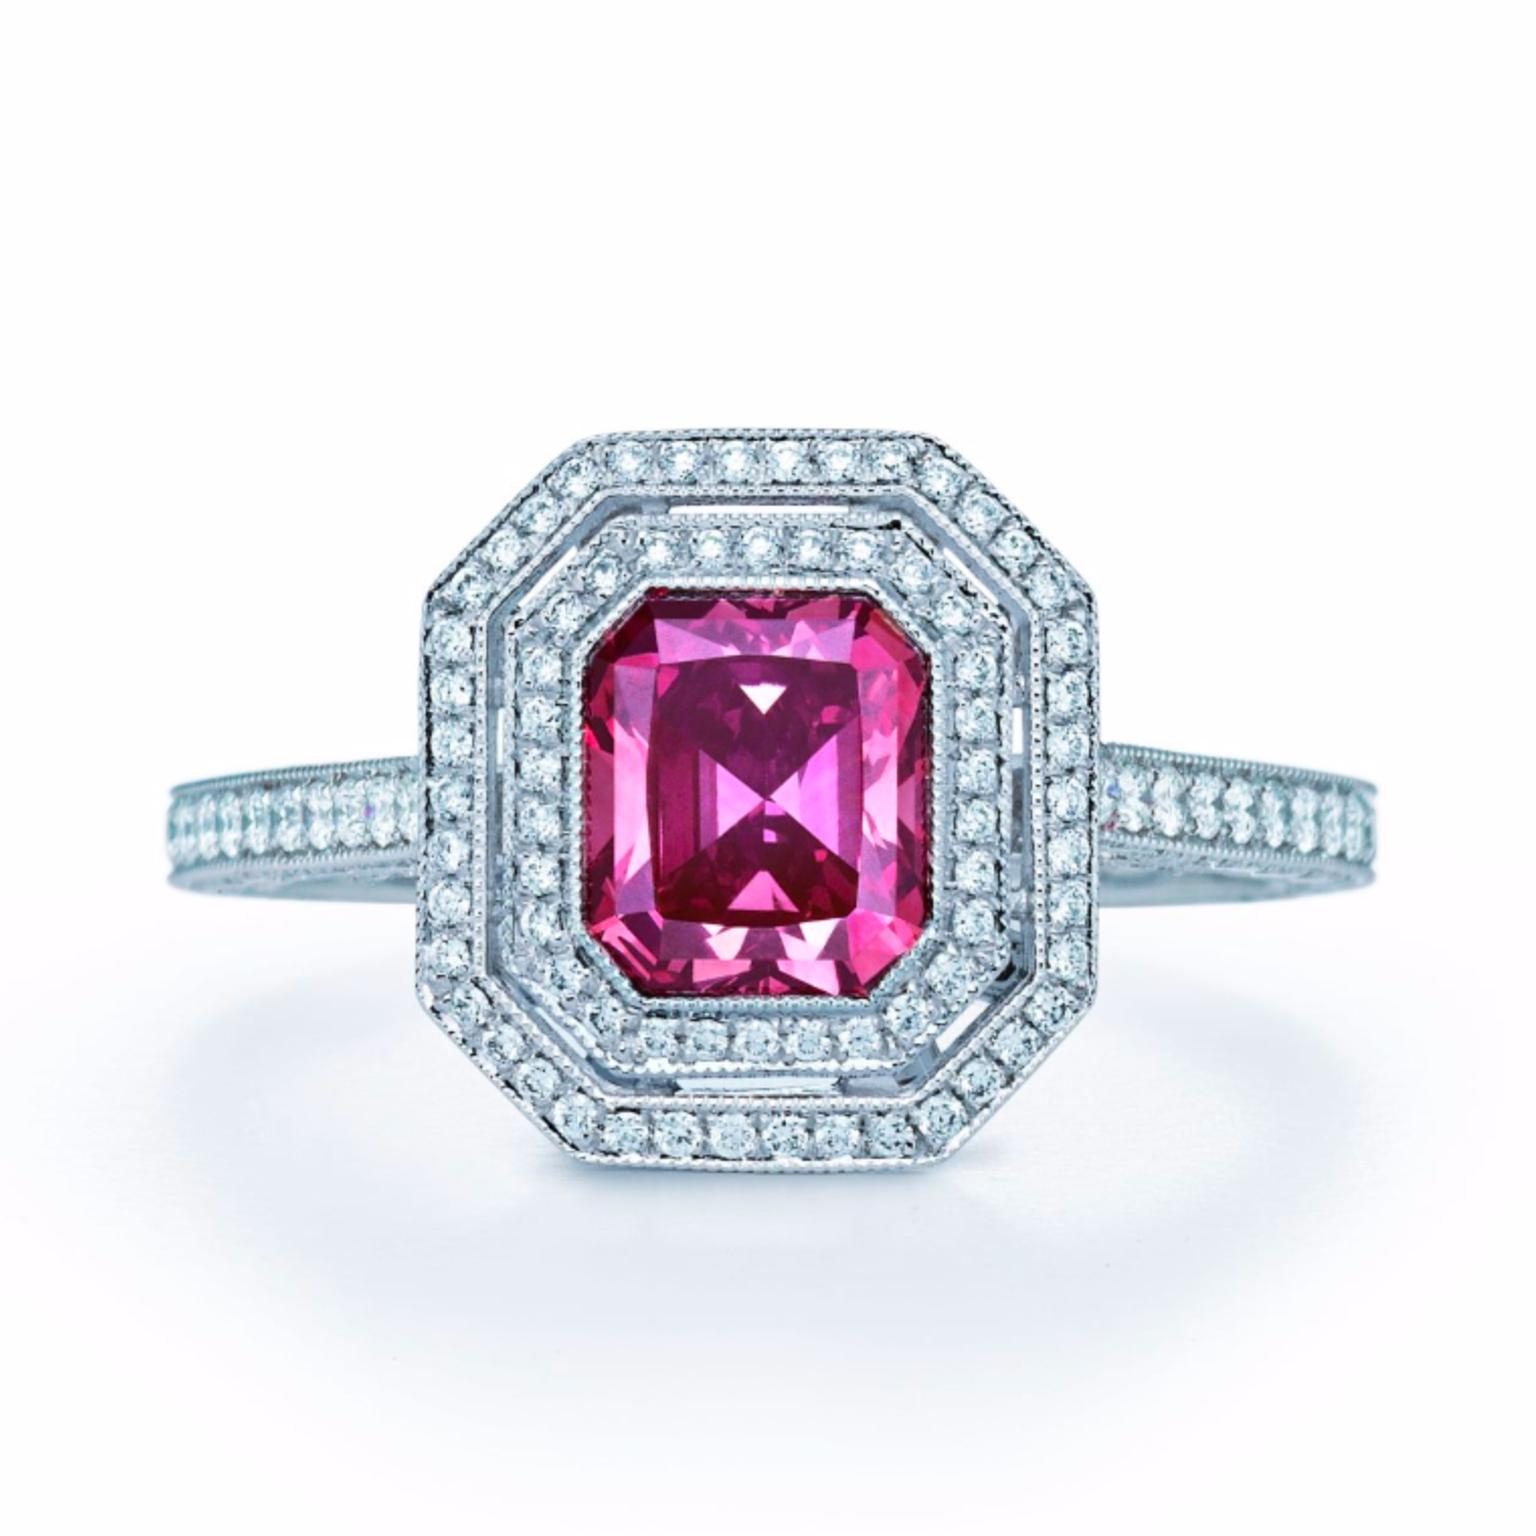 Tiffany Fancy Deep Pink diamond ring